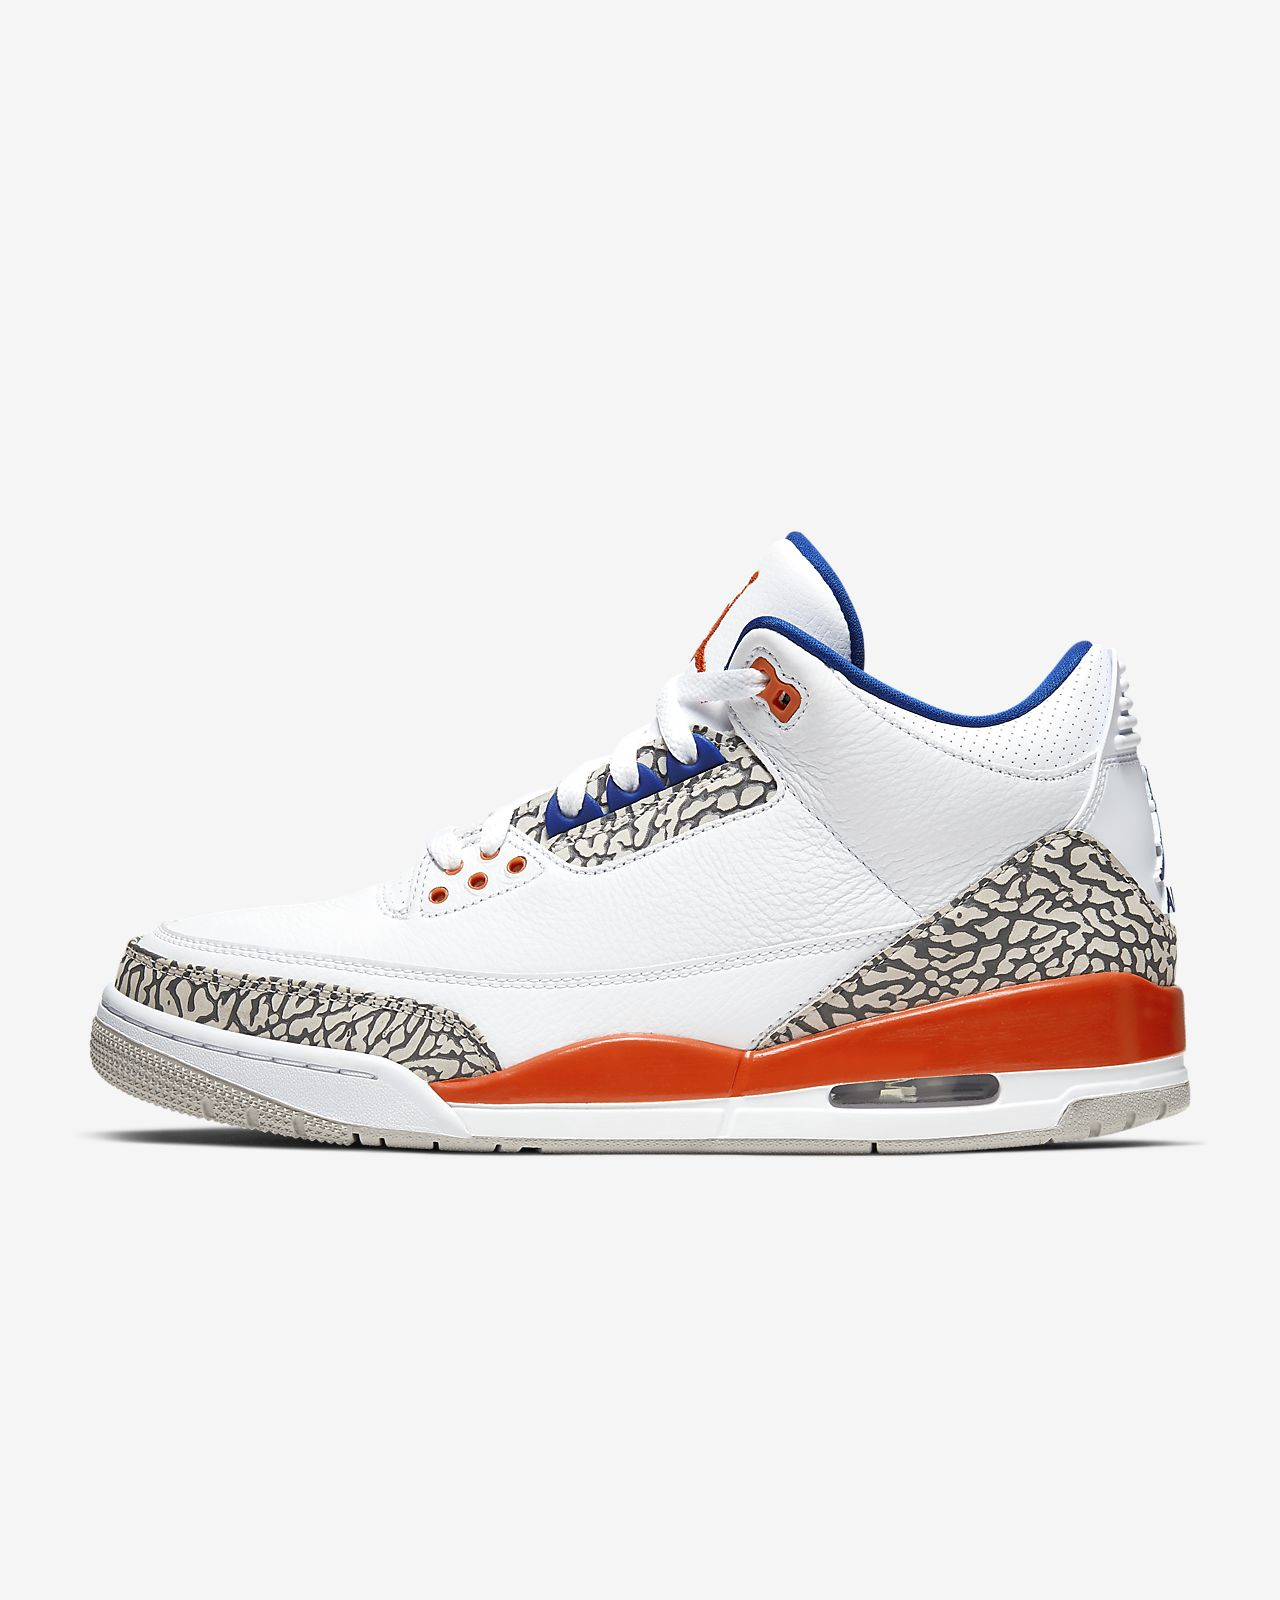 check out 92a05 c879b Air Jordan 3 Retro Men's Shoe